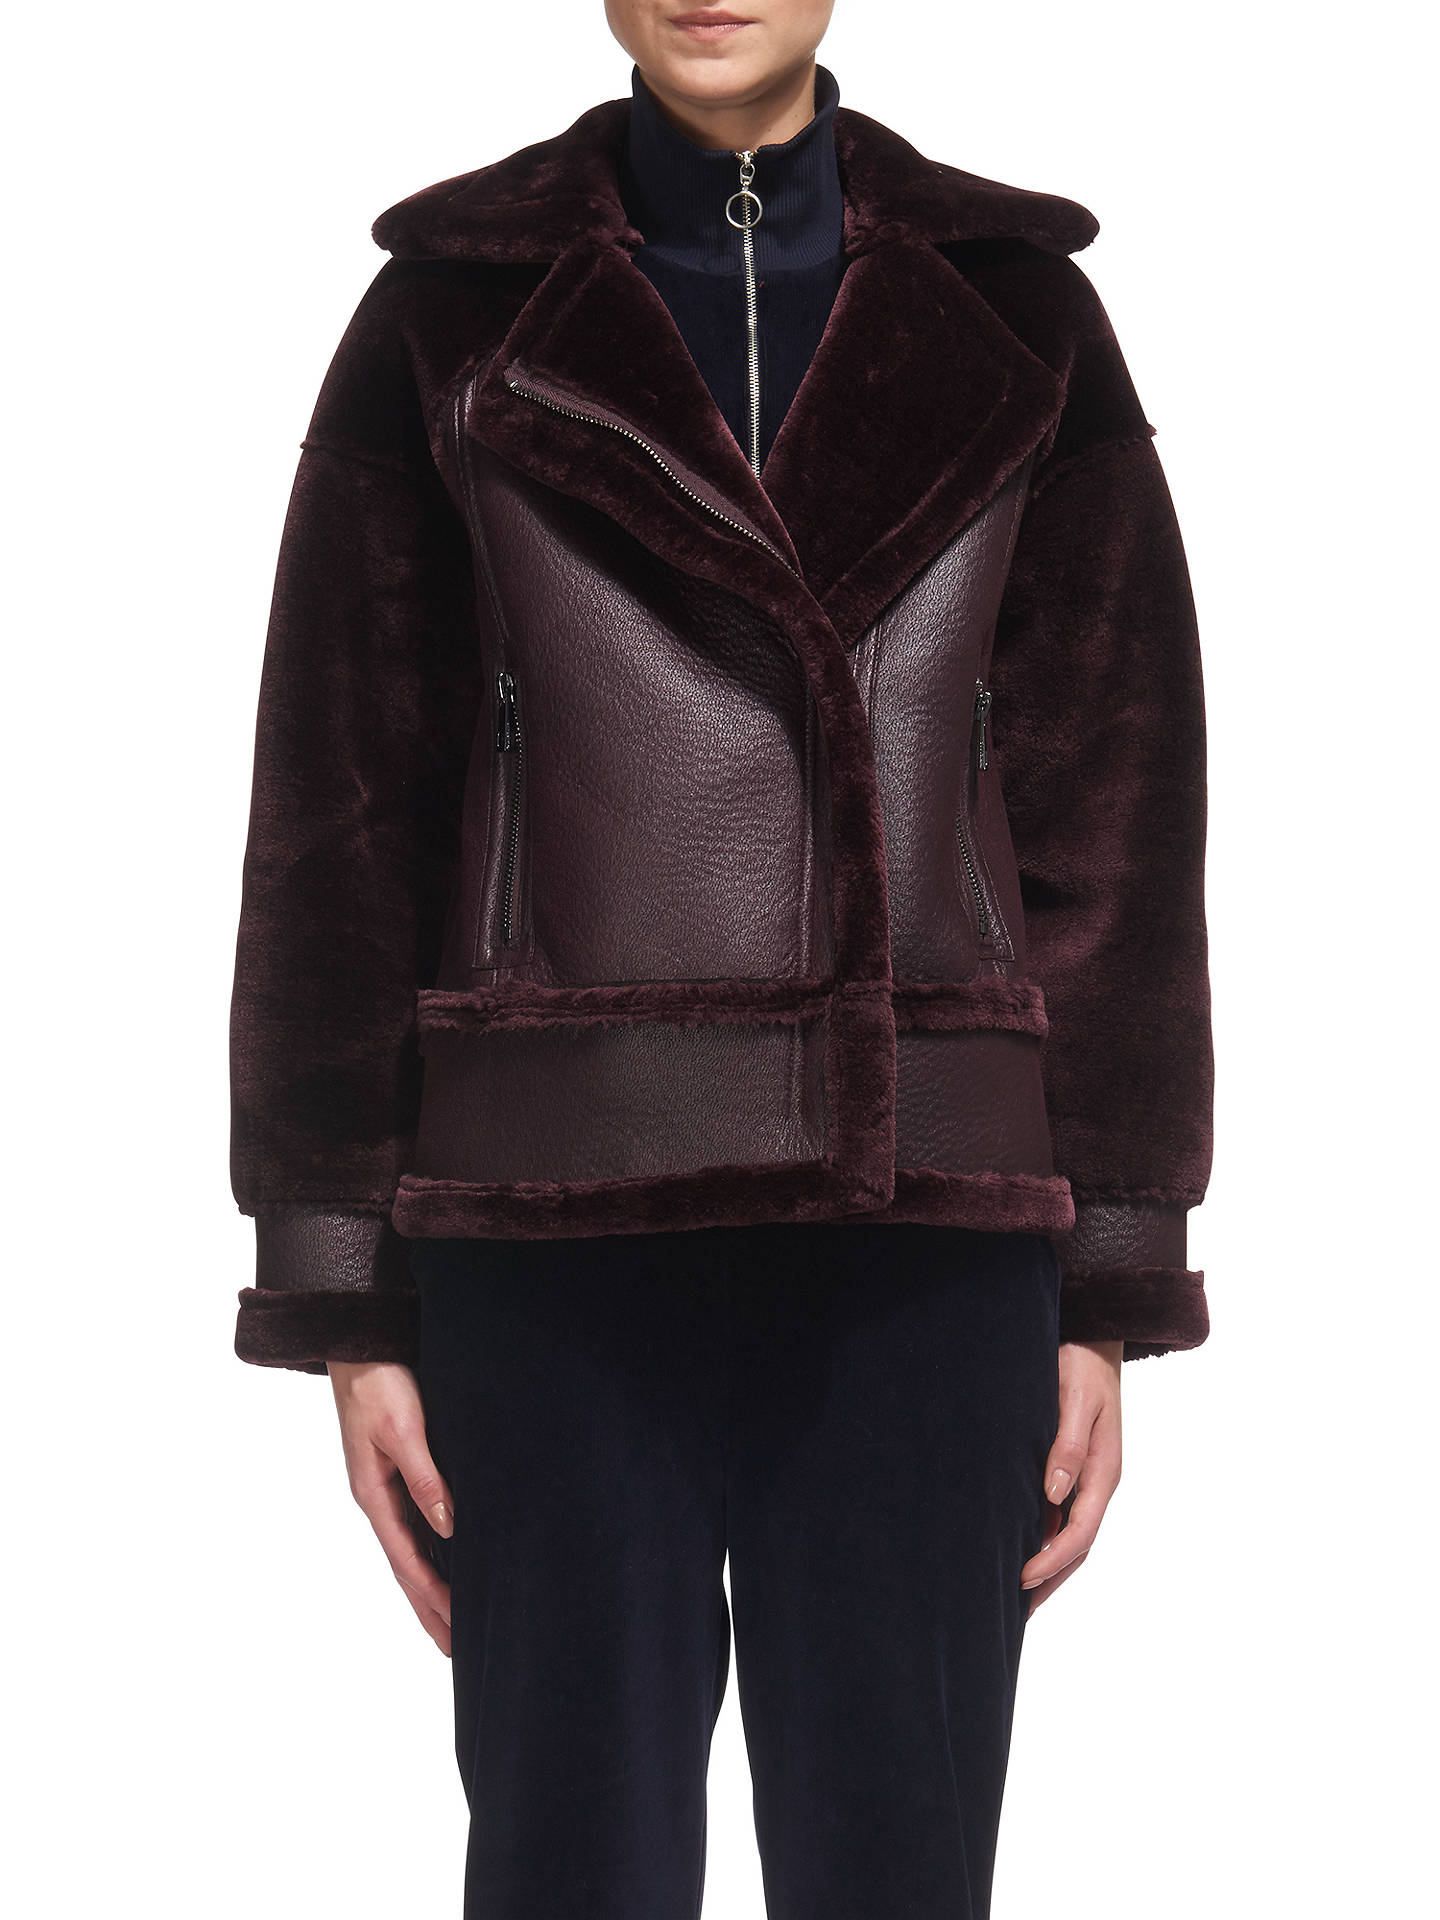 BuyWhistles Faux Fur Biker Jacket, Burgundy, XS Online at johnlewis.com